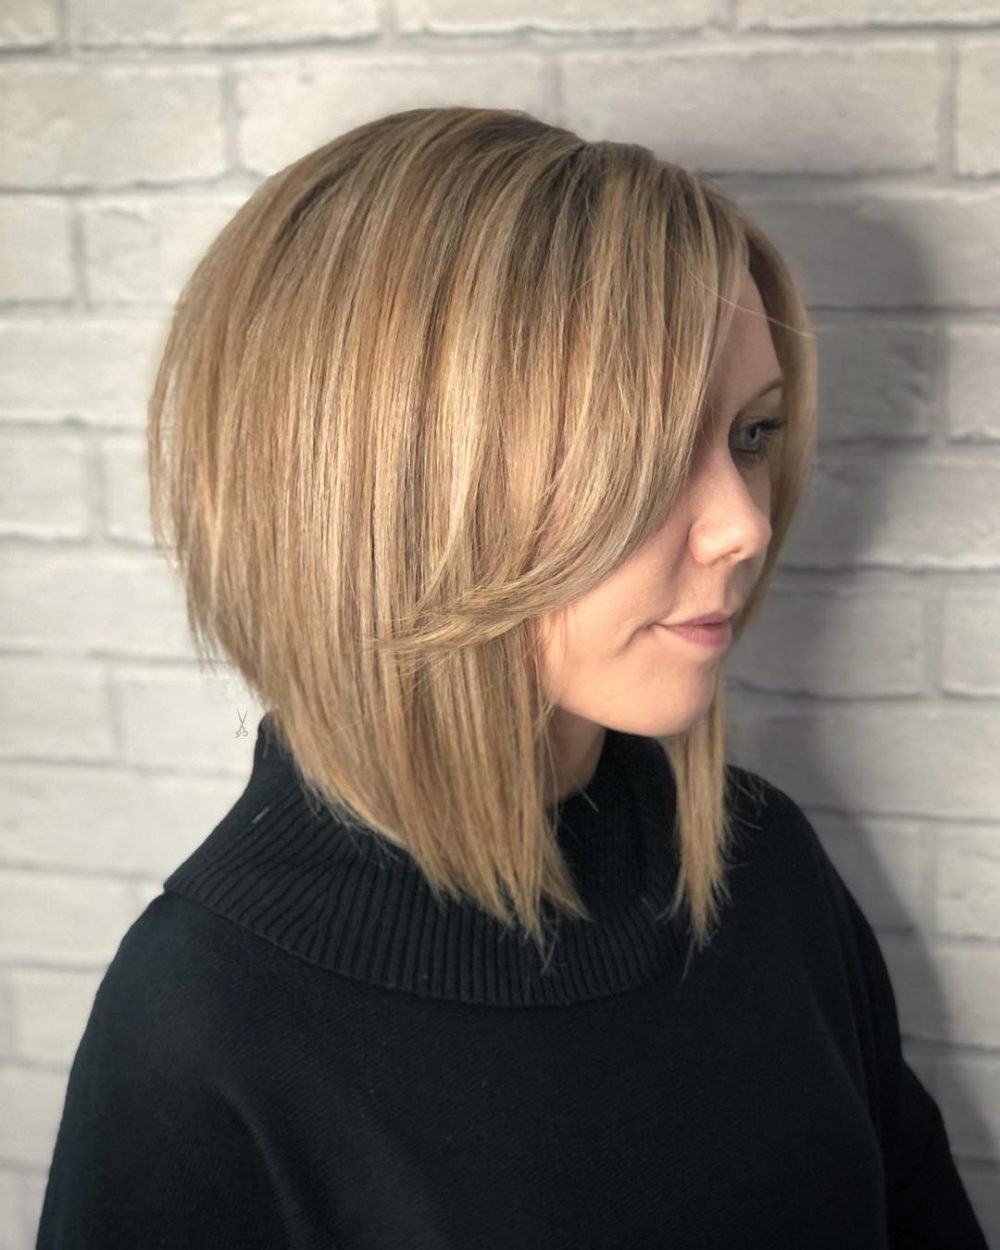 34 Greatest Short Haircuts And Hairstyles For Thick Hair For 2018 With Short Layered Hairstyles For Thick Hair (View 11 of 20)